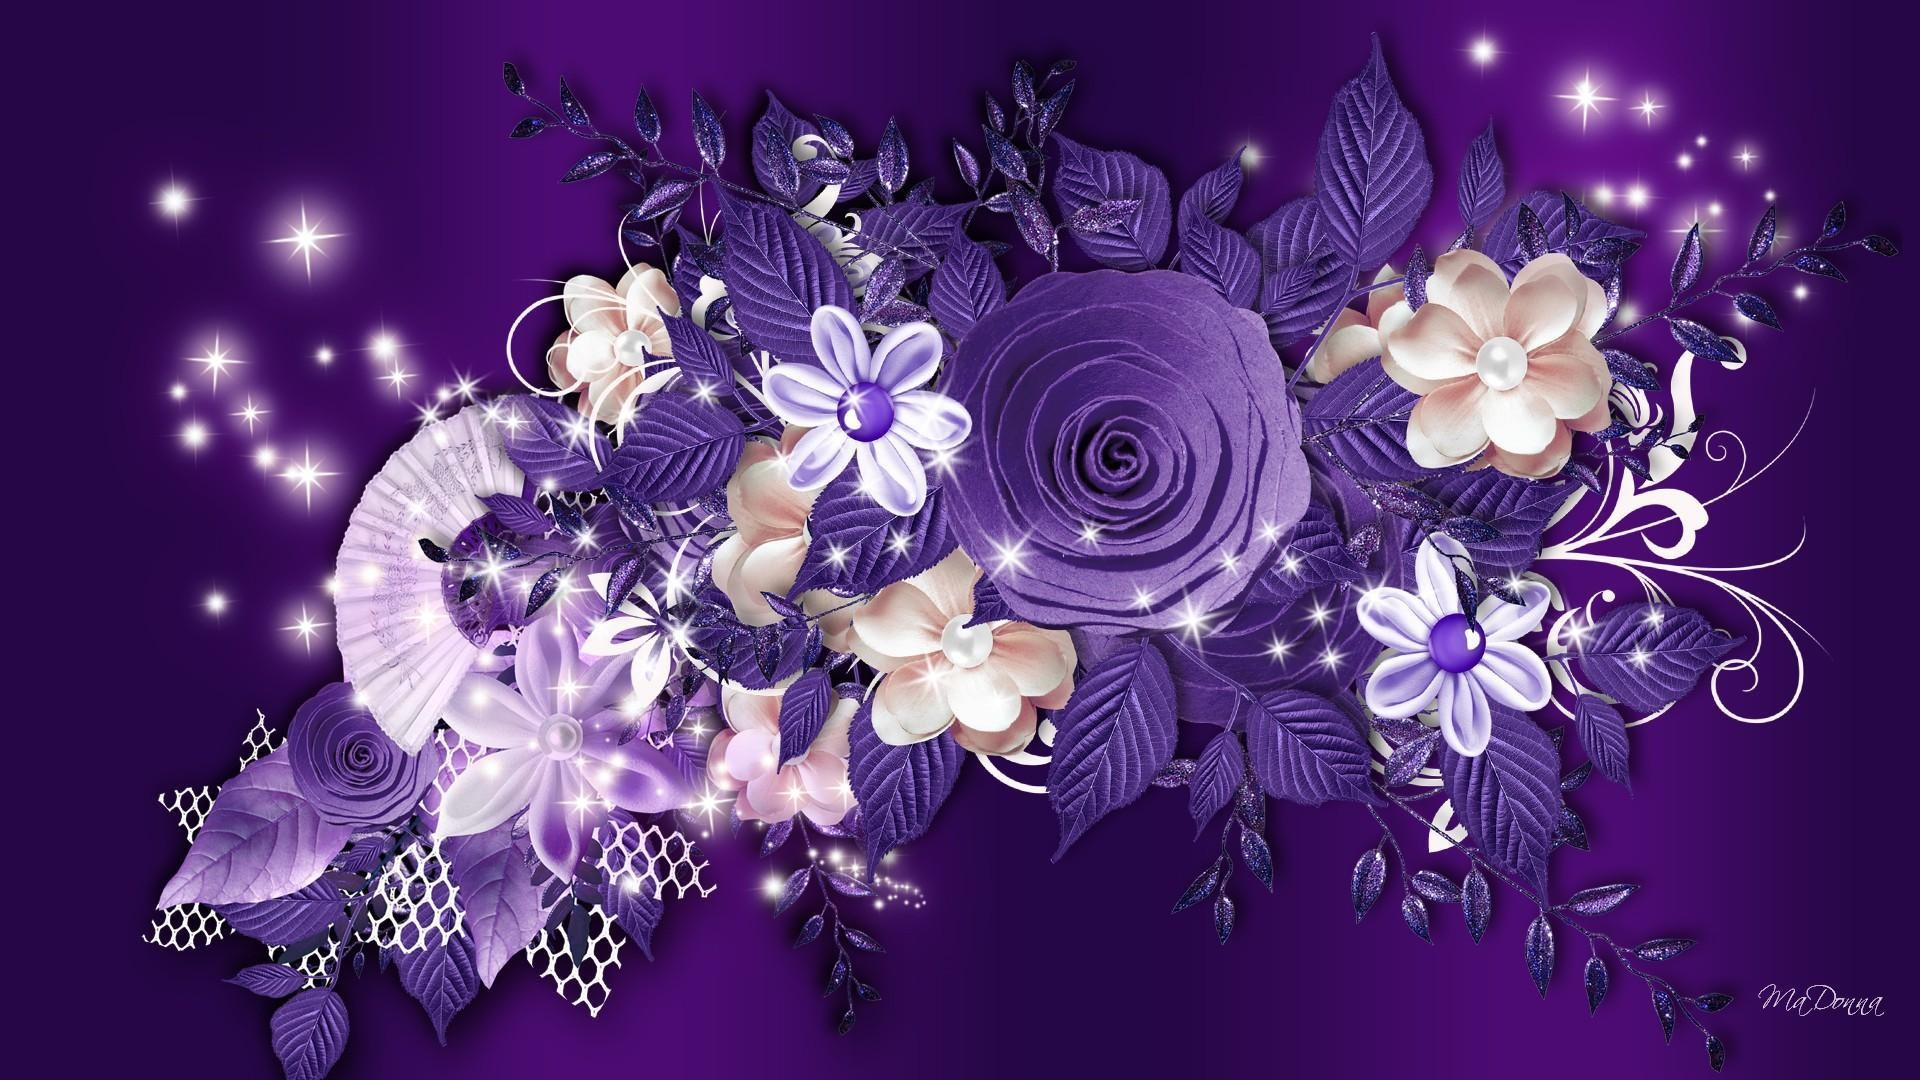 1920x1080 Purple roses and other flowers on a purple background wallpapers and .